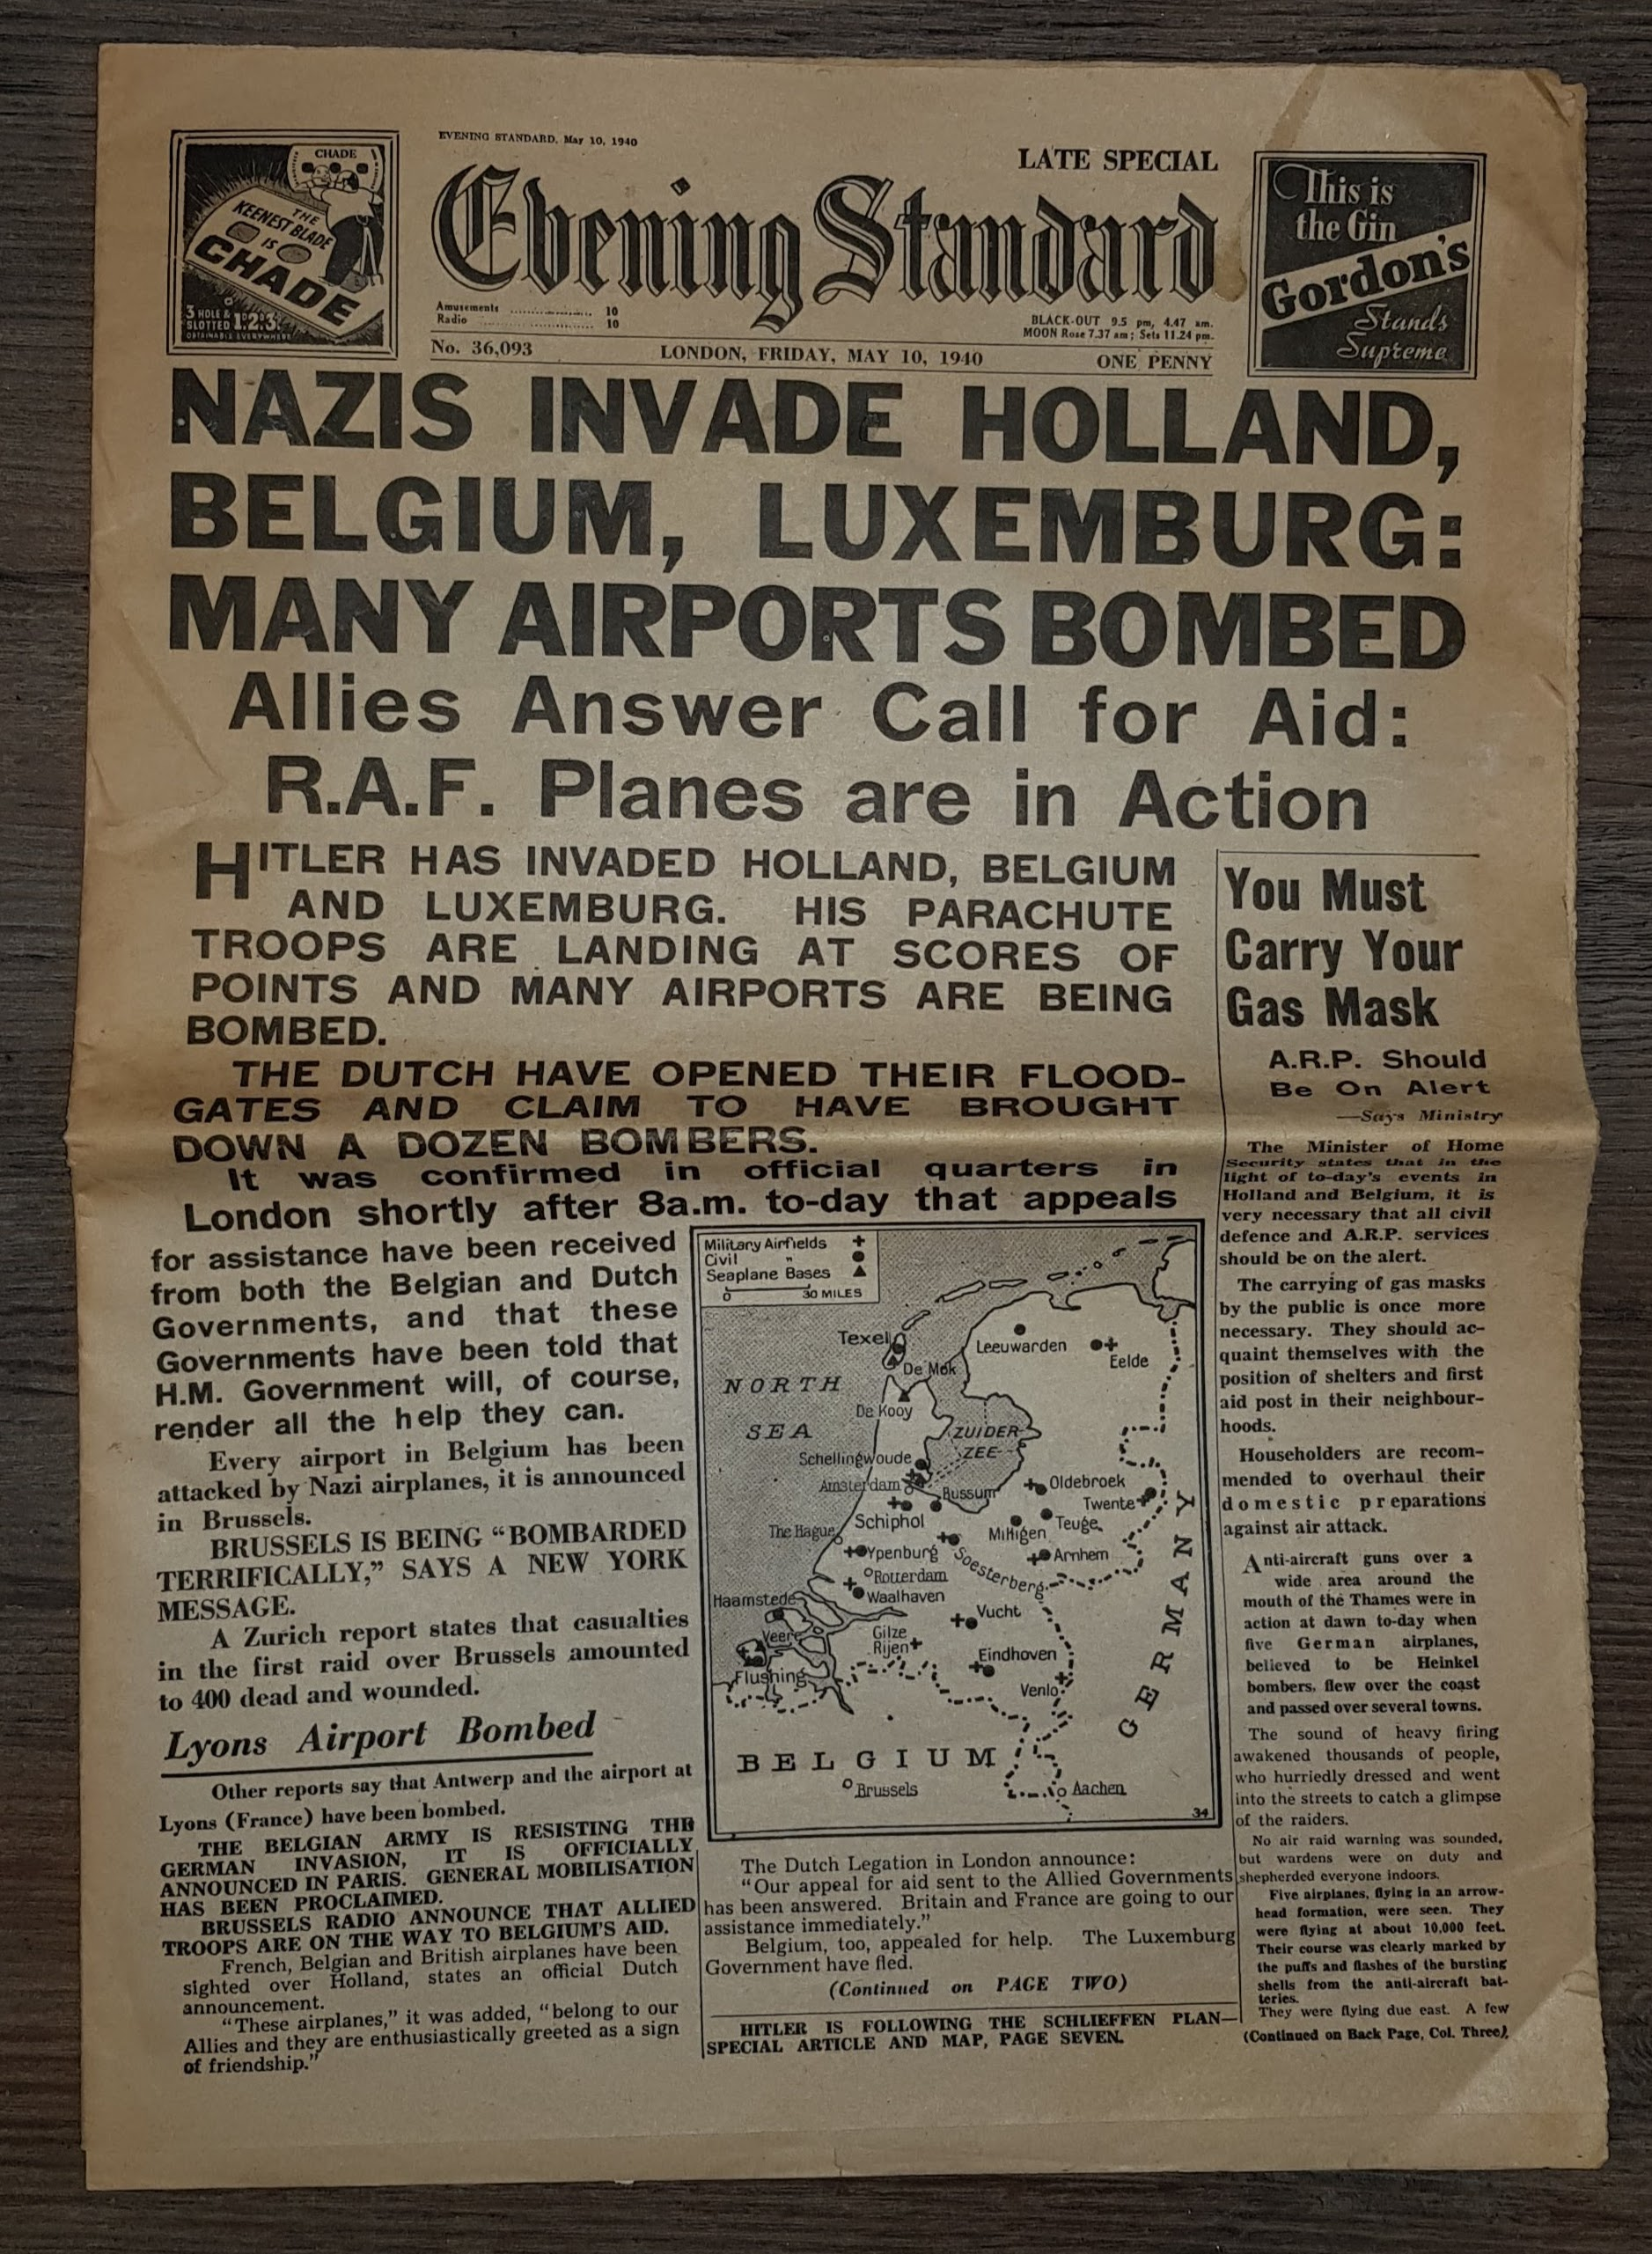 Image for Evening Standard May 10, 1940, Nazis Invade Holland, Belgium, Luxemburg: Many Airports Bombed.